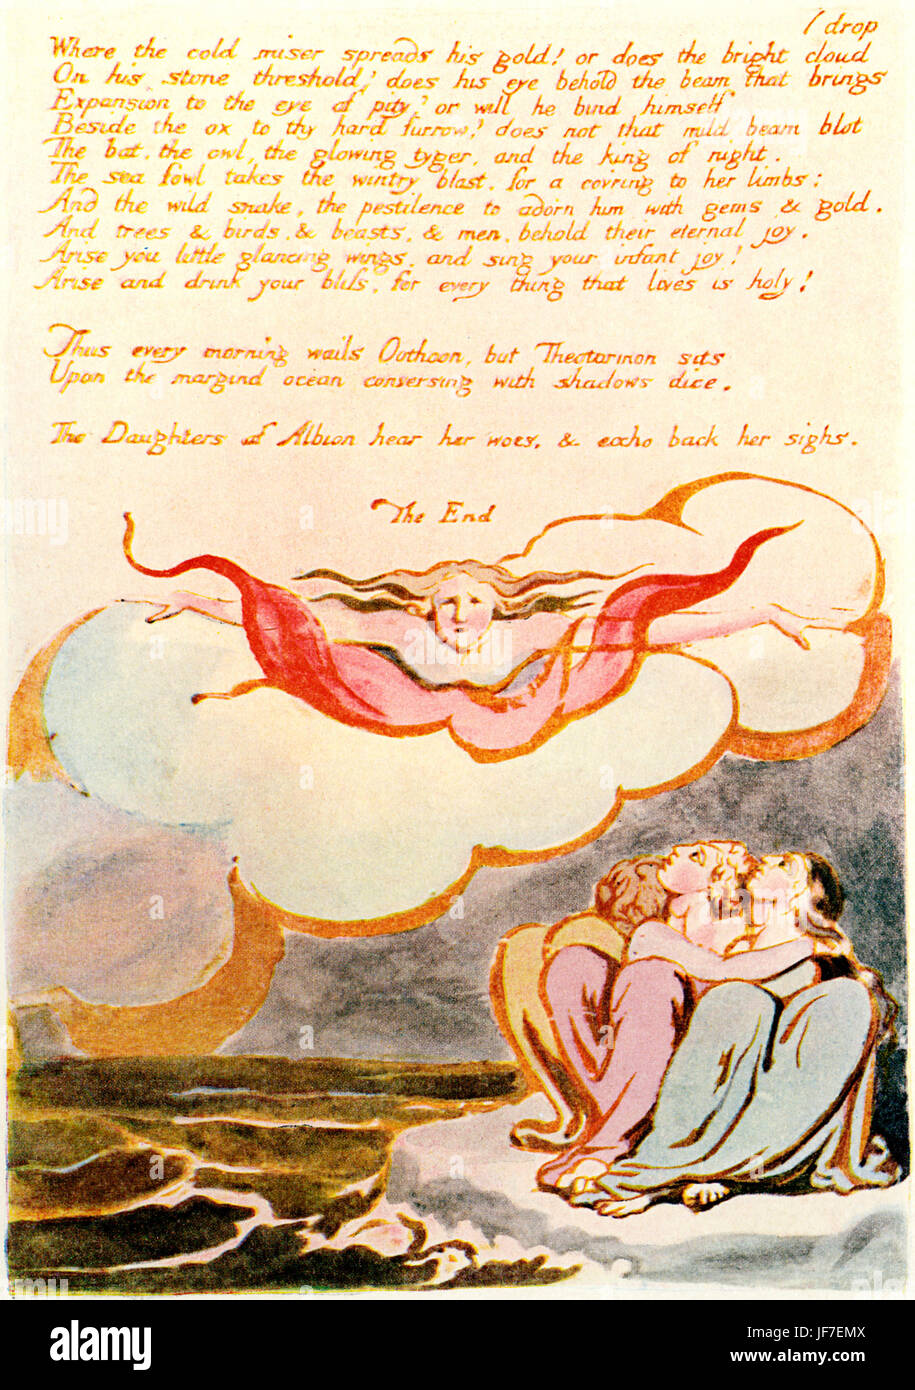 William Blake 's illustration for his poem Visions of the Daughters of Albion (1793). Last Verse. English poet, - Stock Image